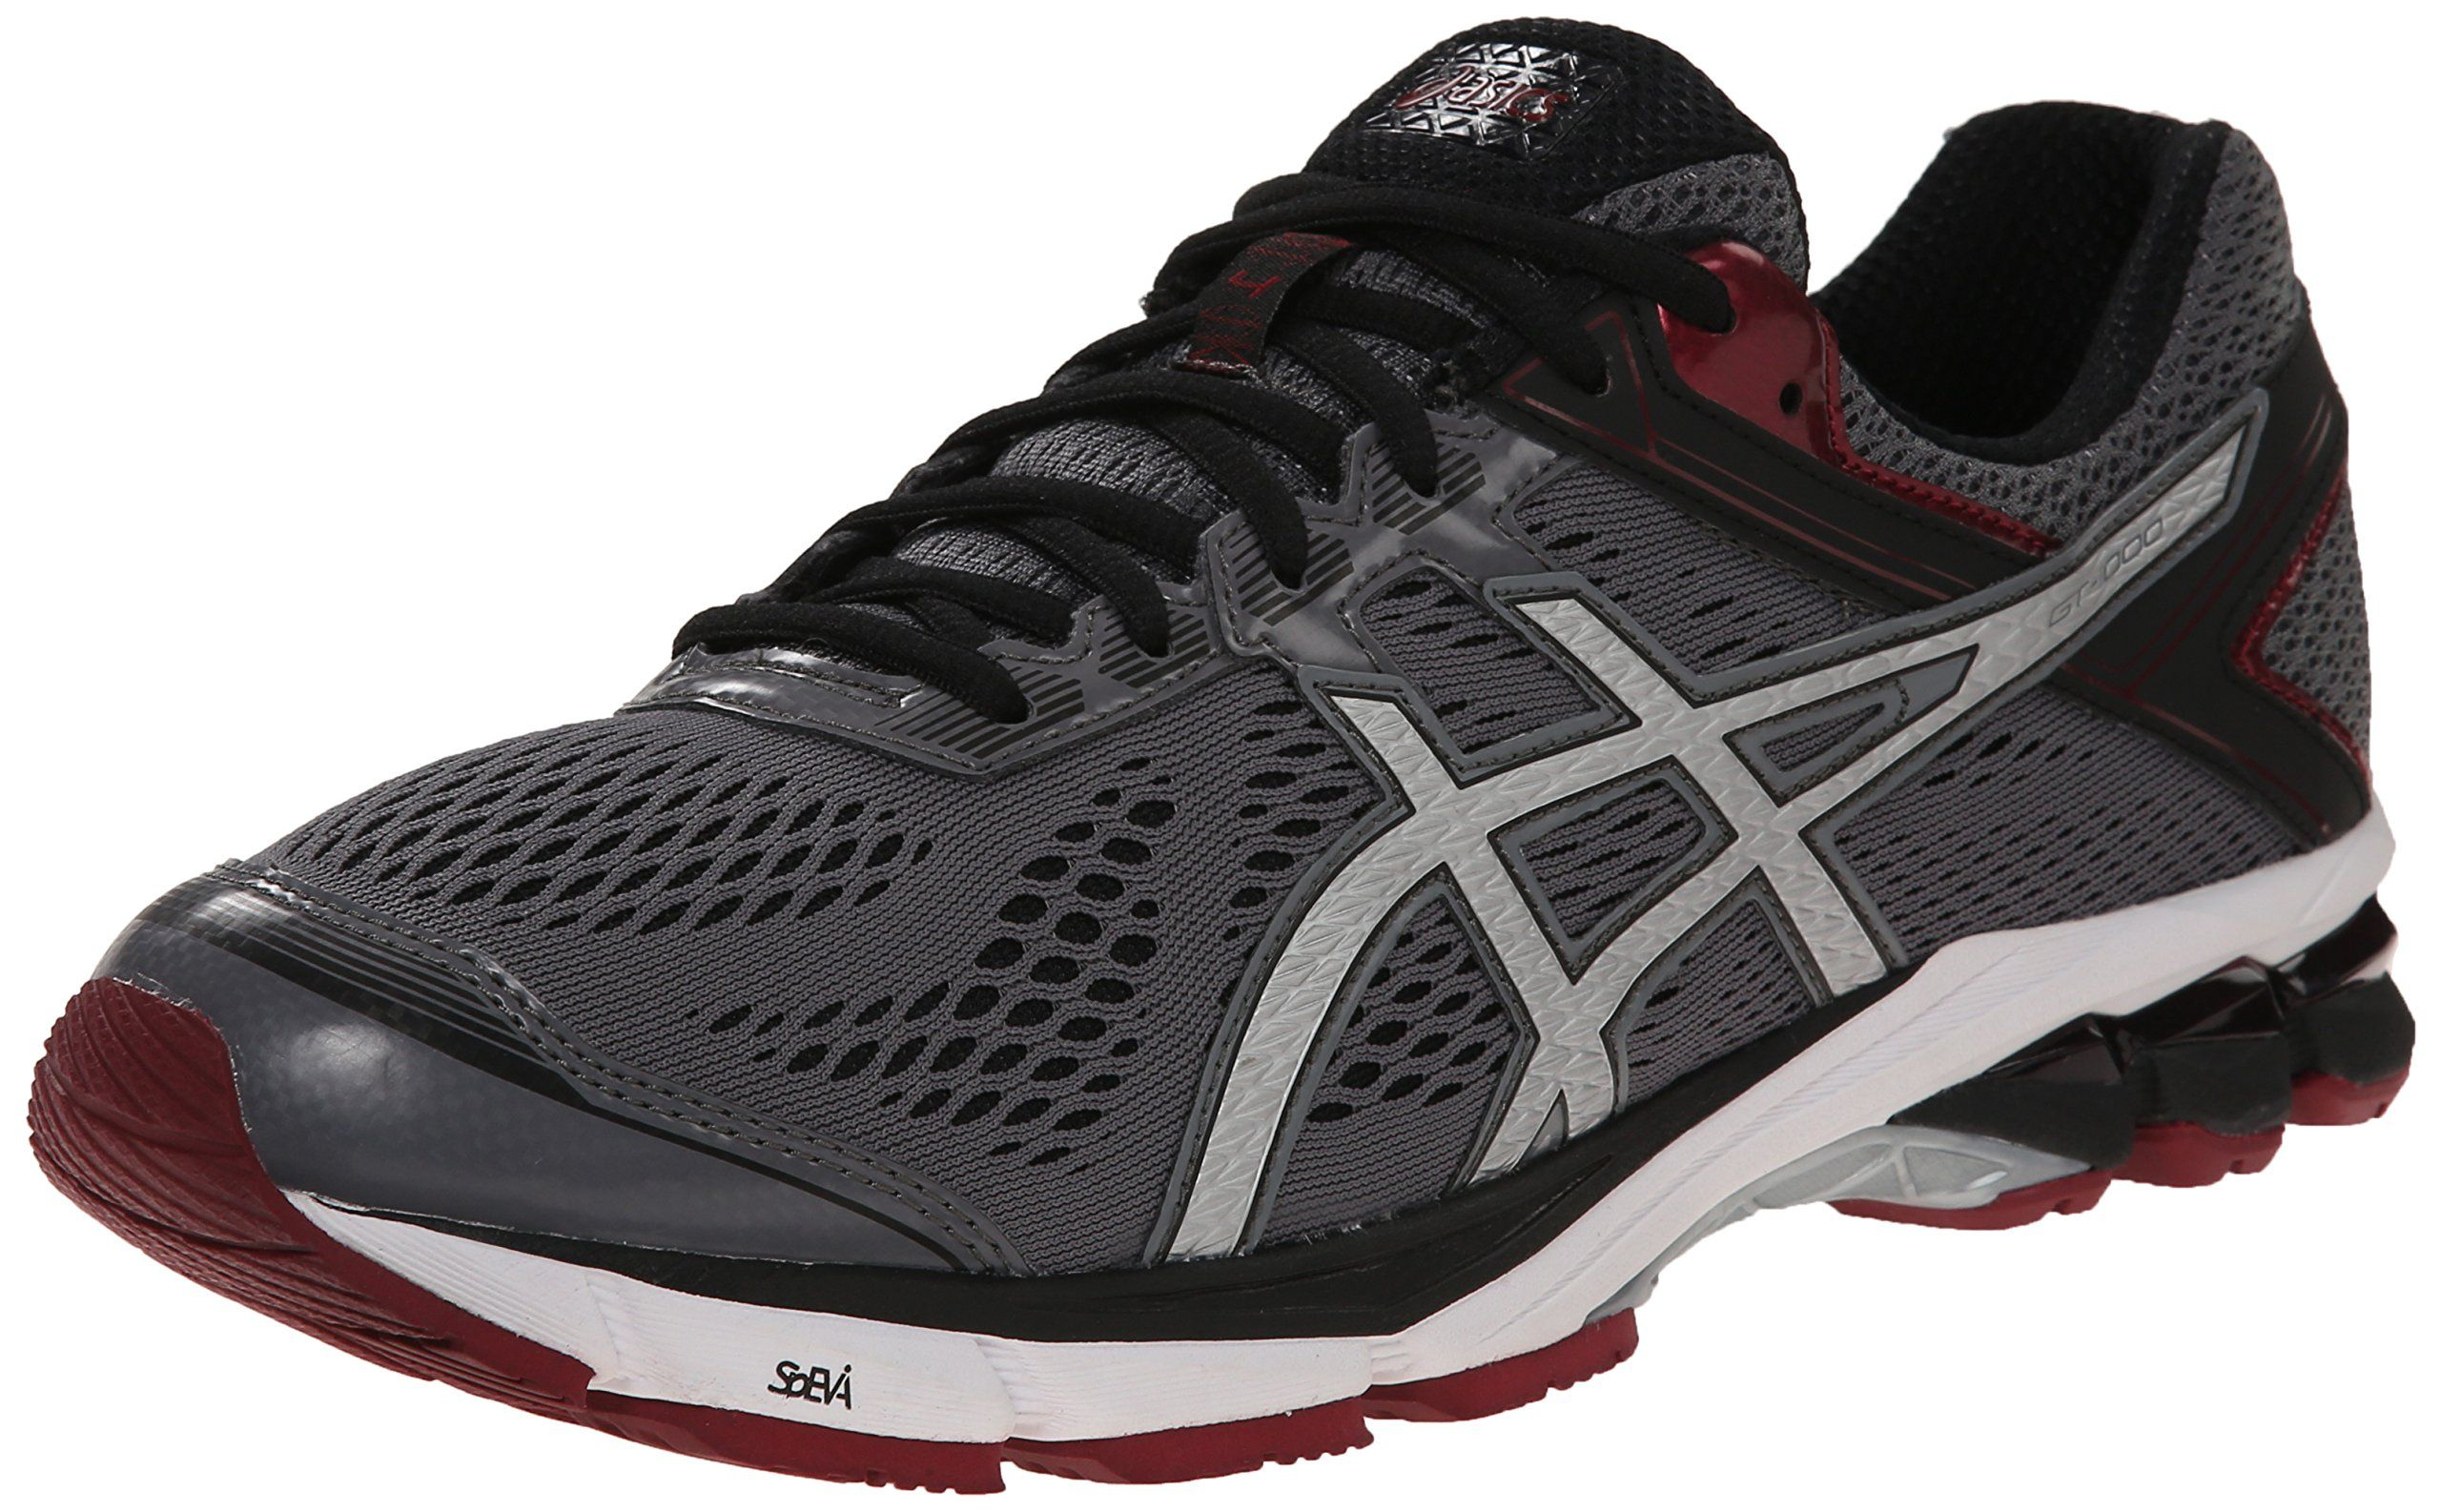 ASICS Men's GT 1000 4 Running Shoe, Carbon/Silver/Maroon, 14 M US. Stability  running shoe engineered to support overpronation featuring breathable mesh  ...